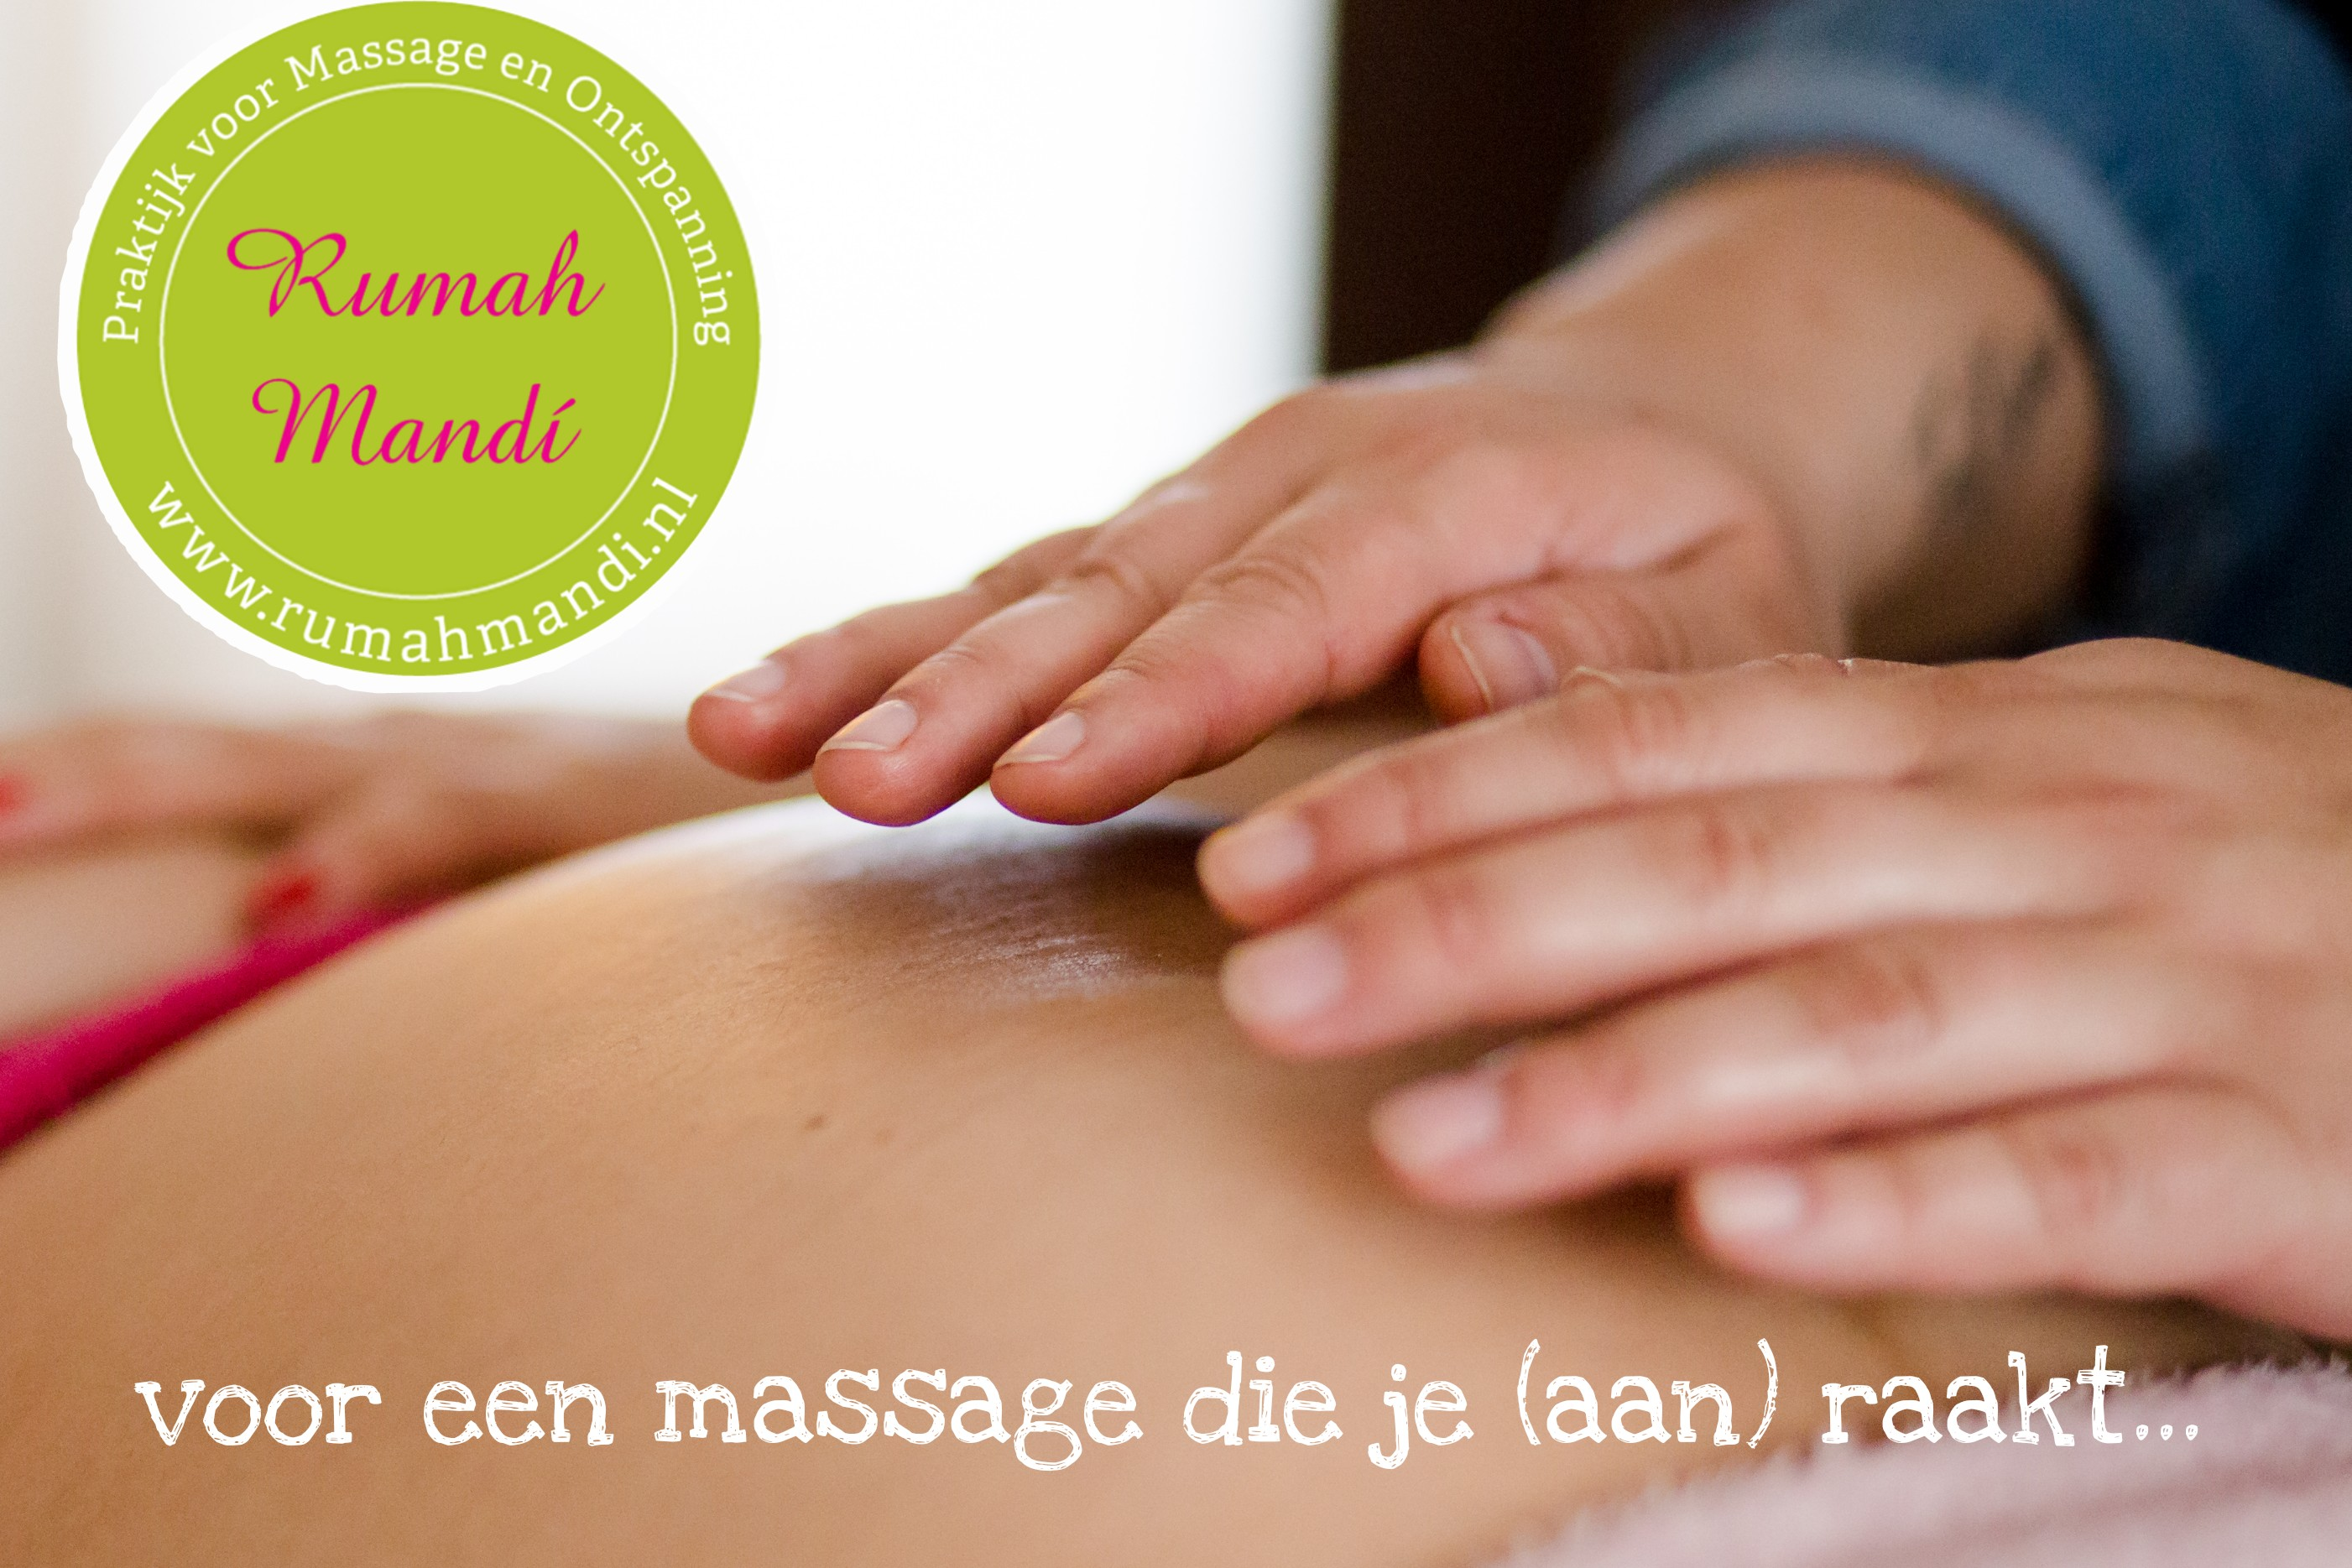 sociala media massage djup hals